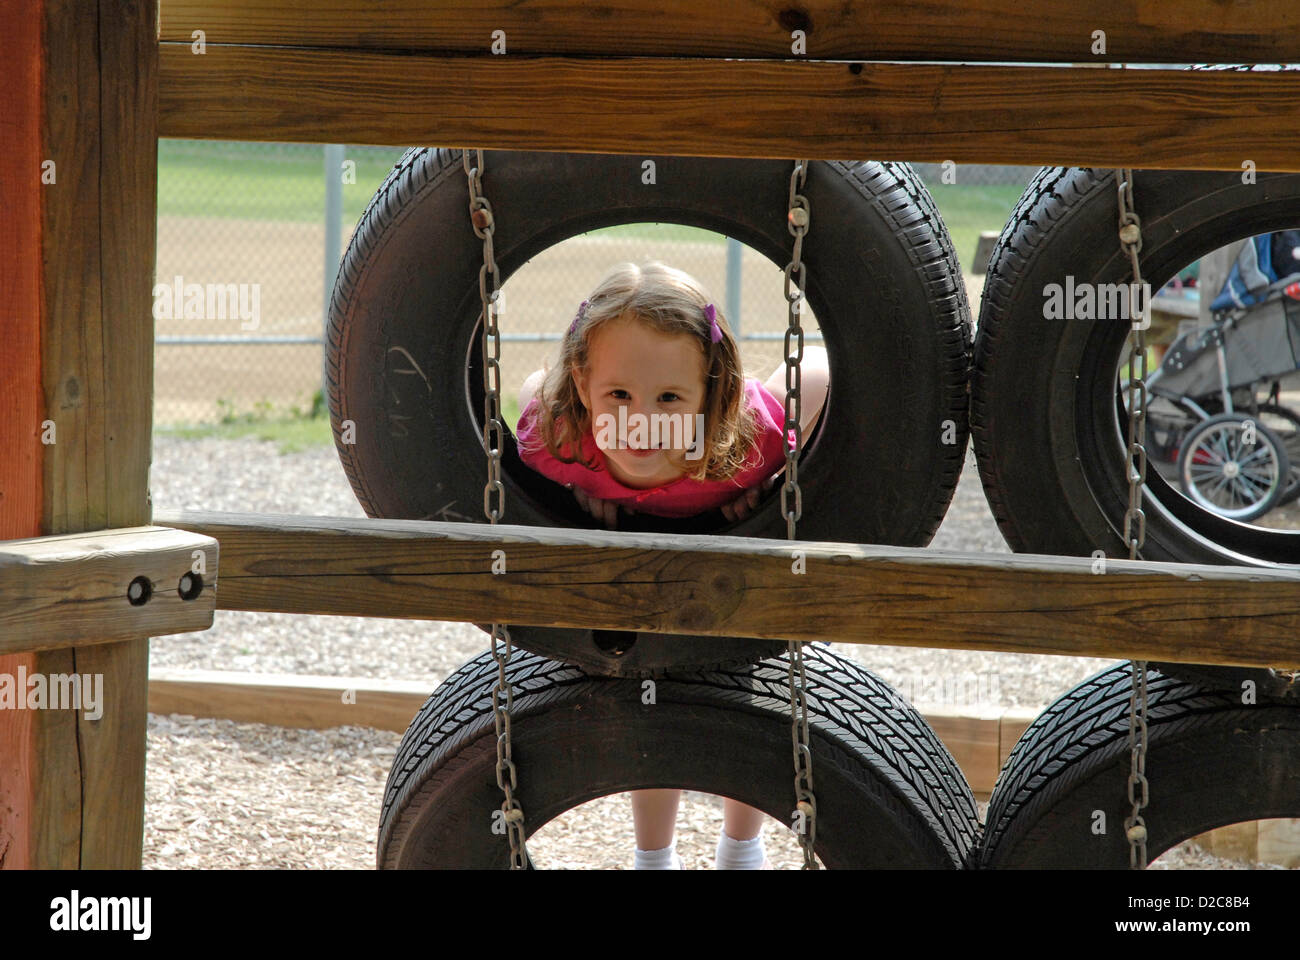 41/2 -Yr. Old Girl, Tires, Playground - Stock Image